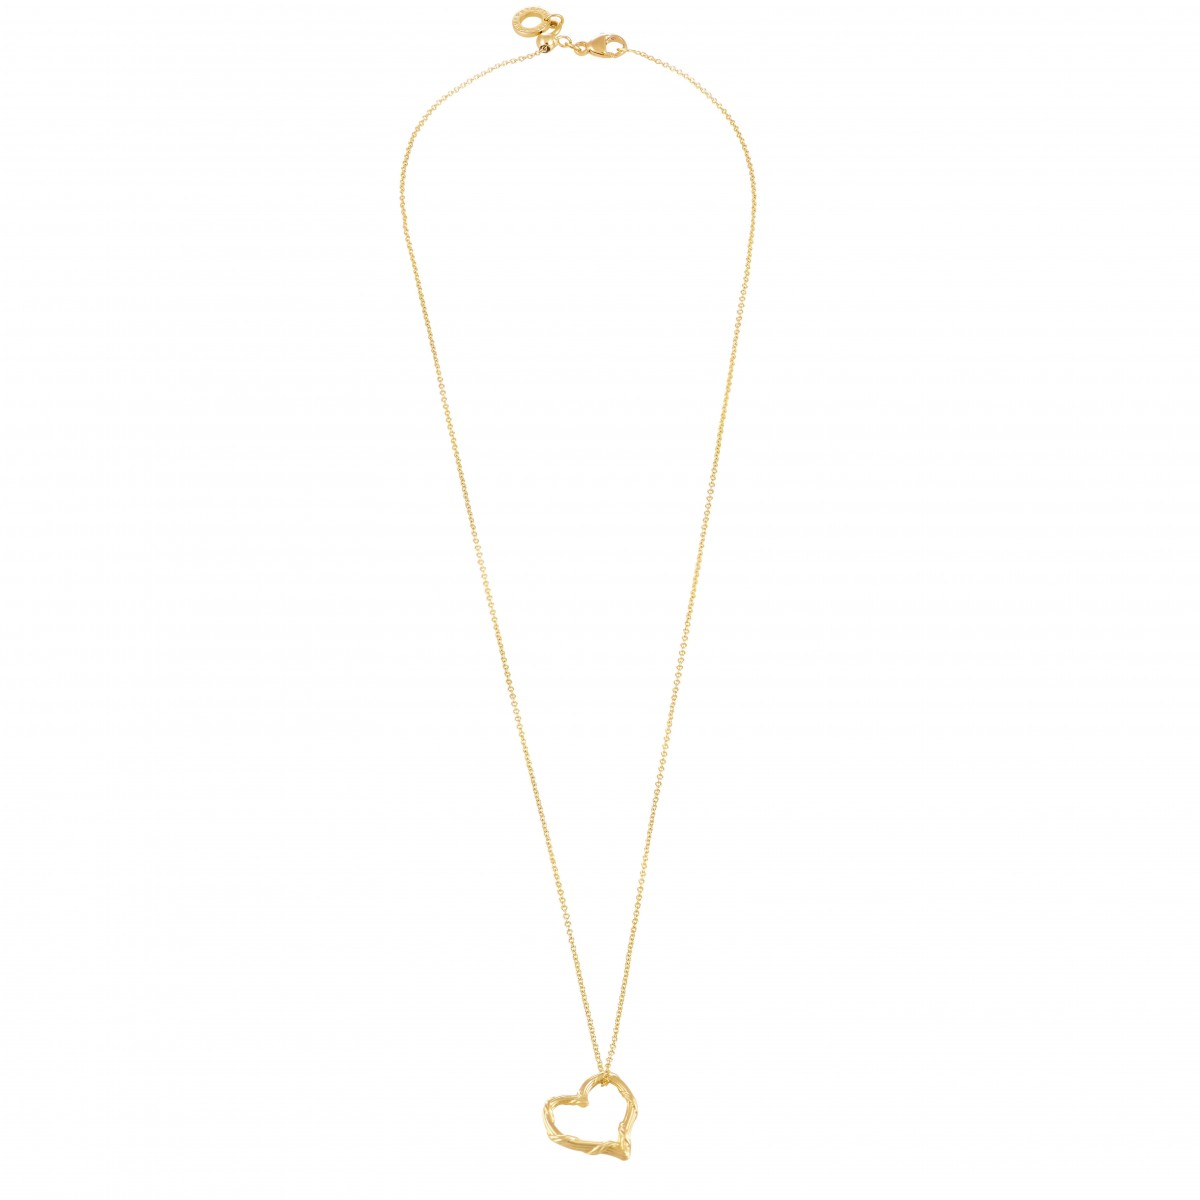 4db8f828bc64 Peter Thomas Roth Heritage Floating Heart Pendant Necklace in 18K ...